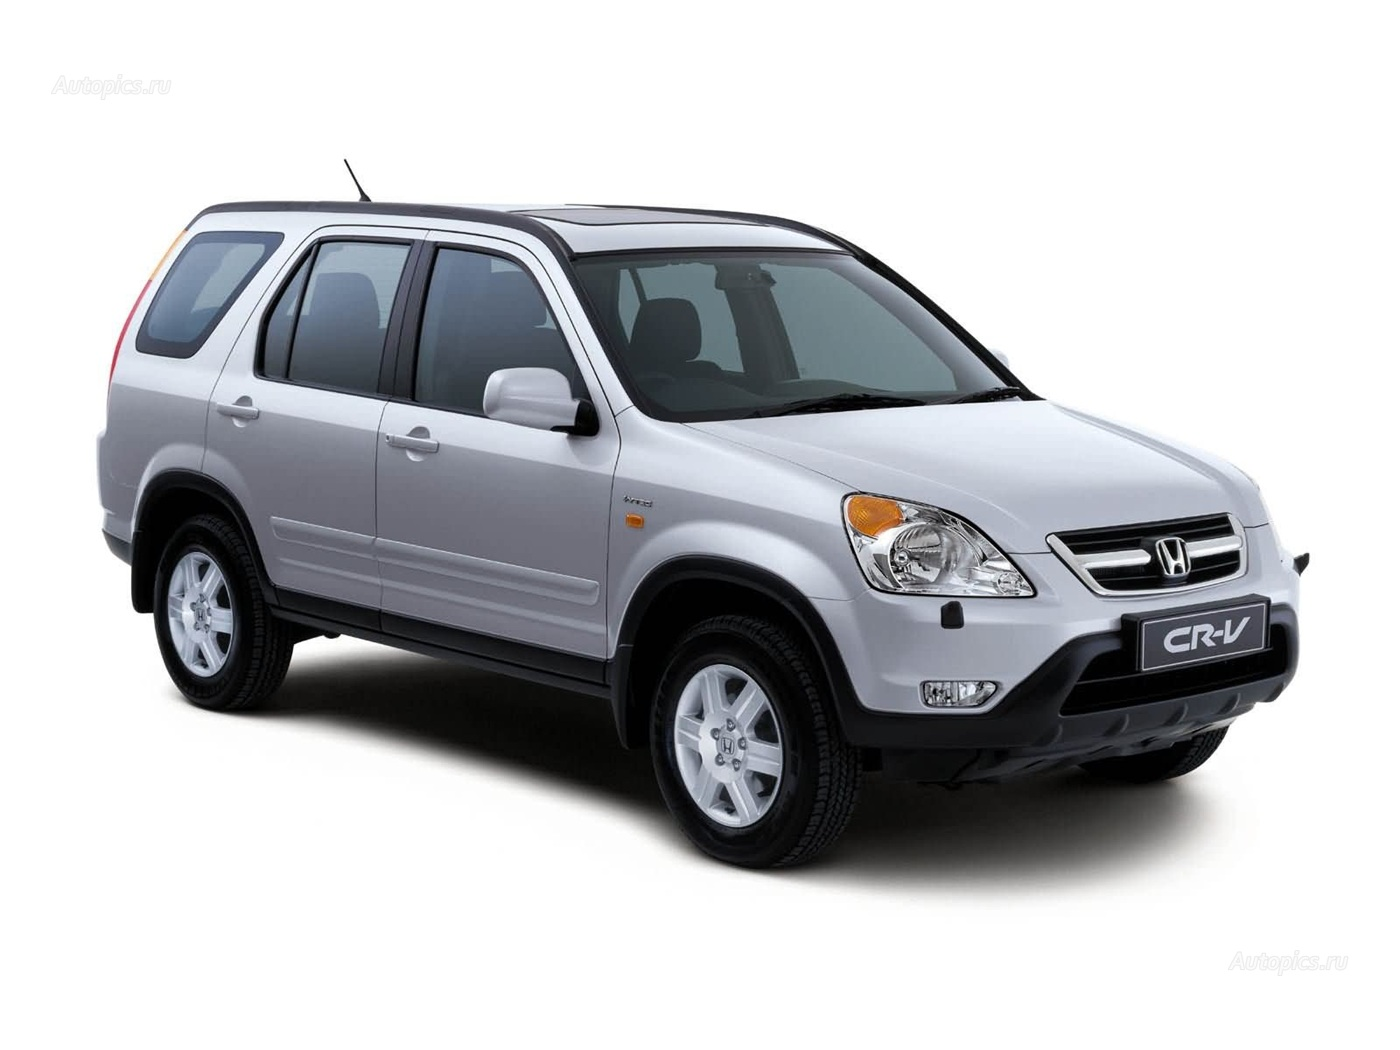 2003 Honda Cr V Ii Rd4 Rd5 Pictures Information And